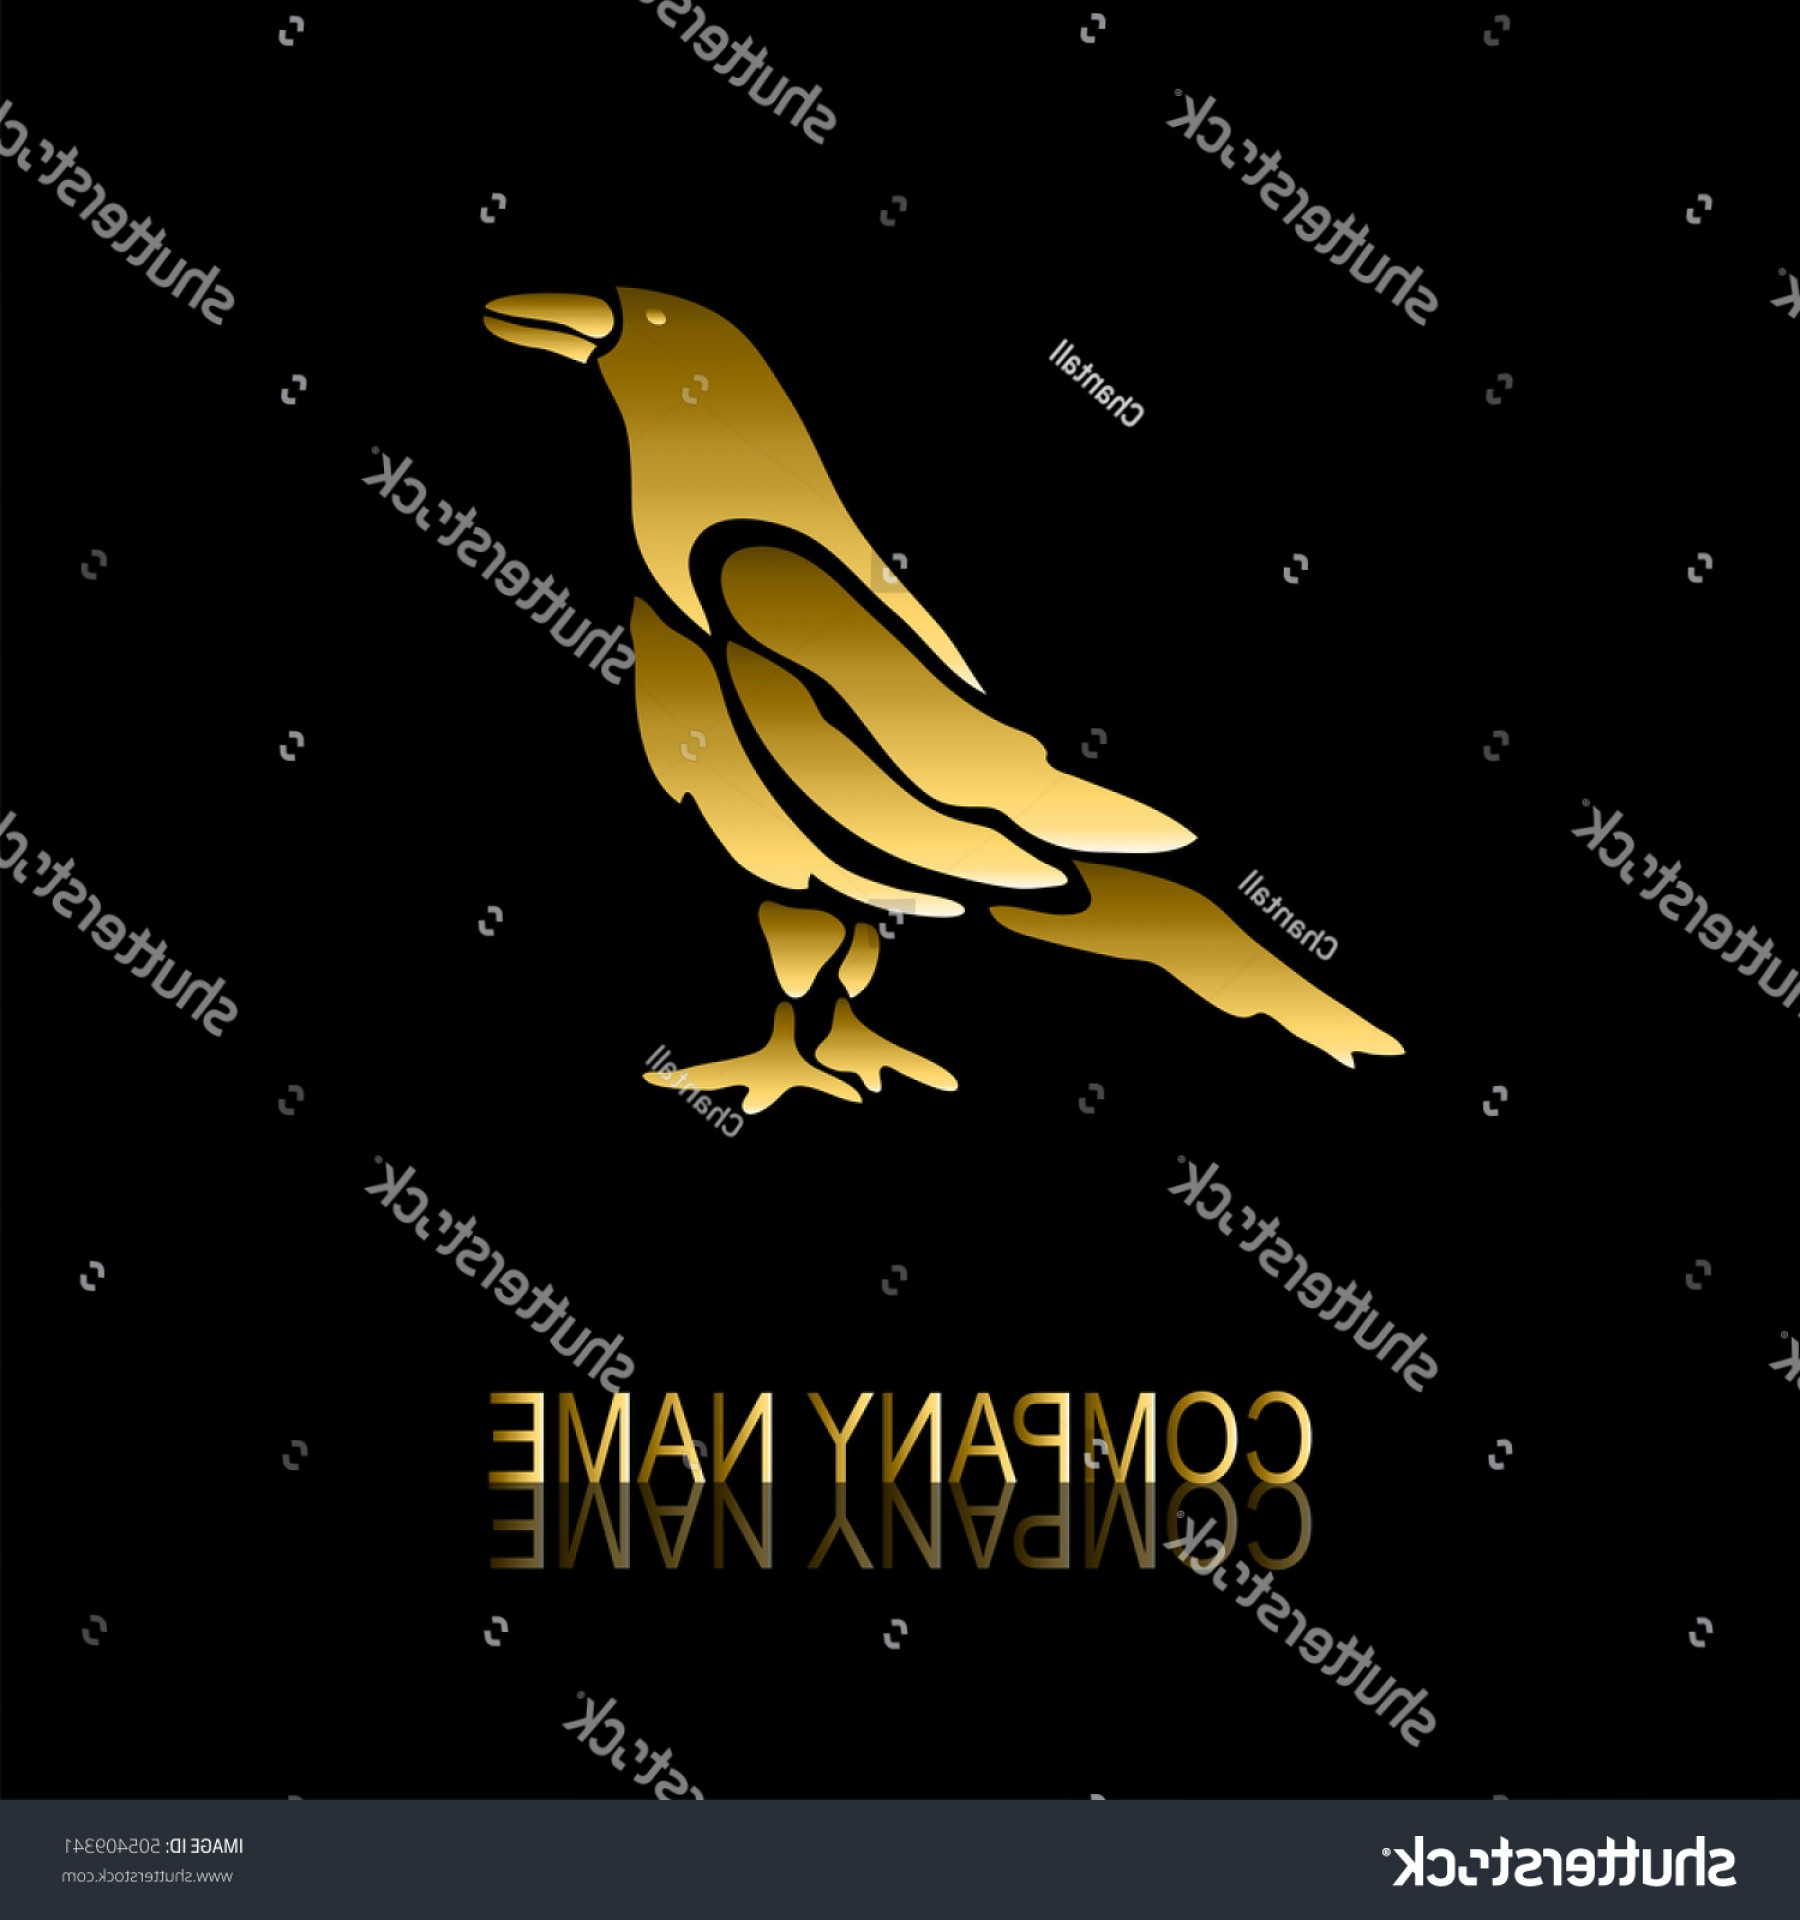 Jewelry Manufacturing Icon Vector: Abstract Golden Crow Signsymbol Design Element